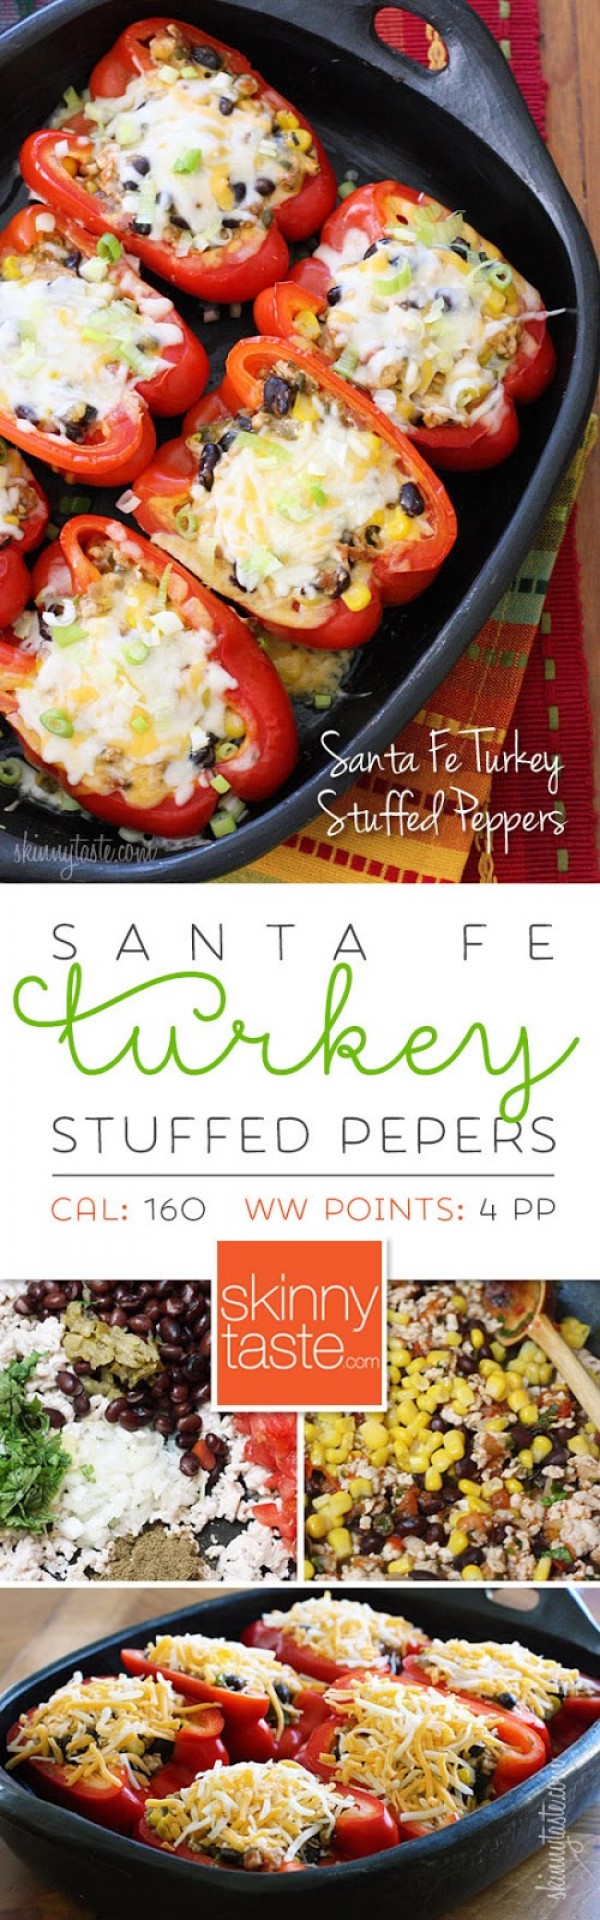 Get the recipe Santa Fe Turkey Stuffed Peppers @recipes_to_go